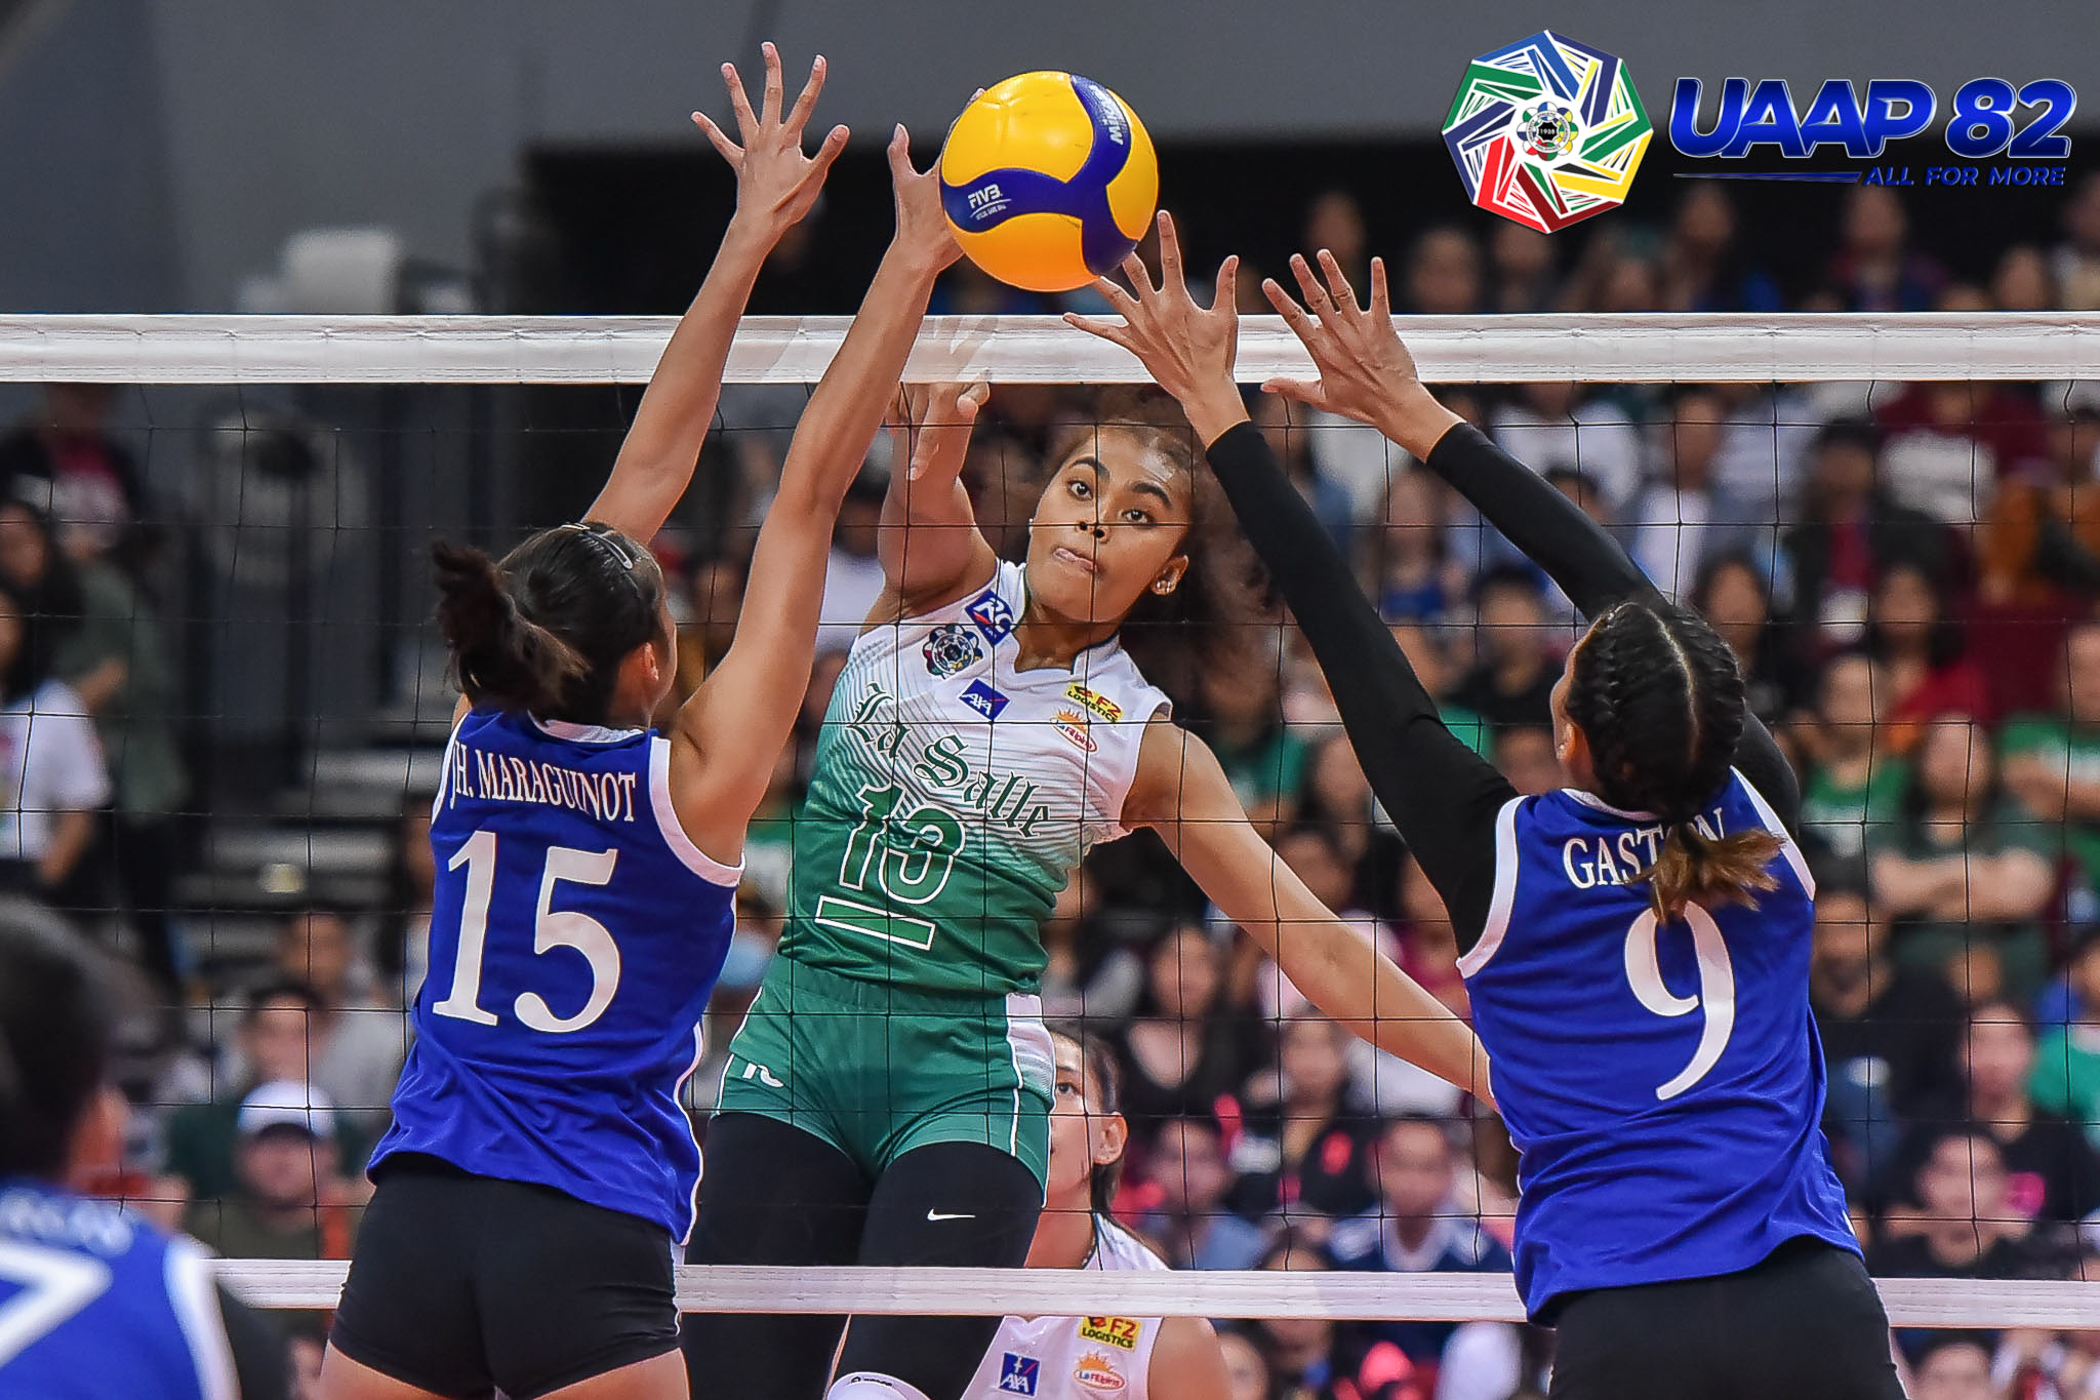 La Salle reasserts mastery over Ateneo in season debut